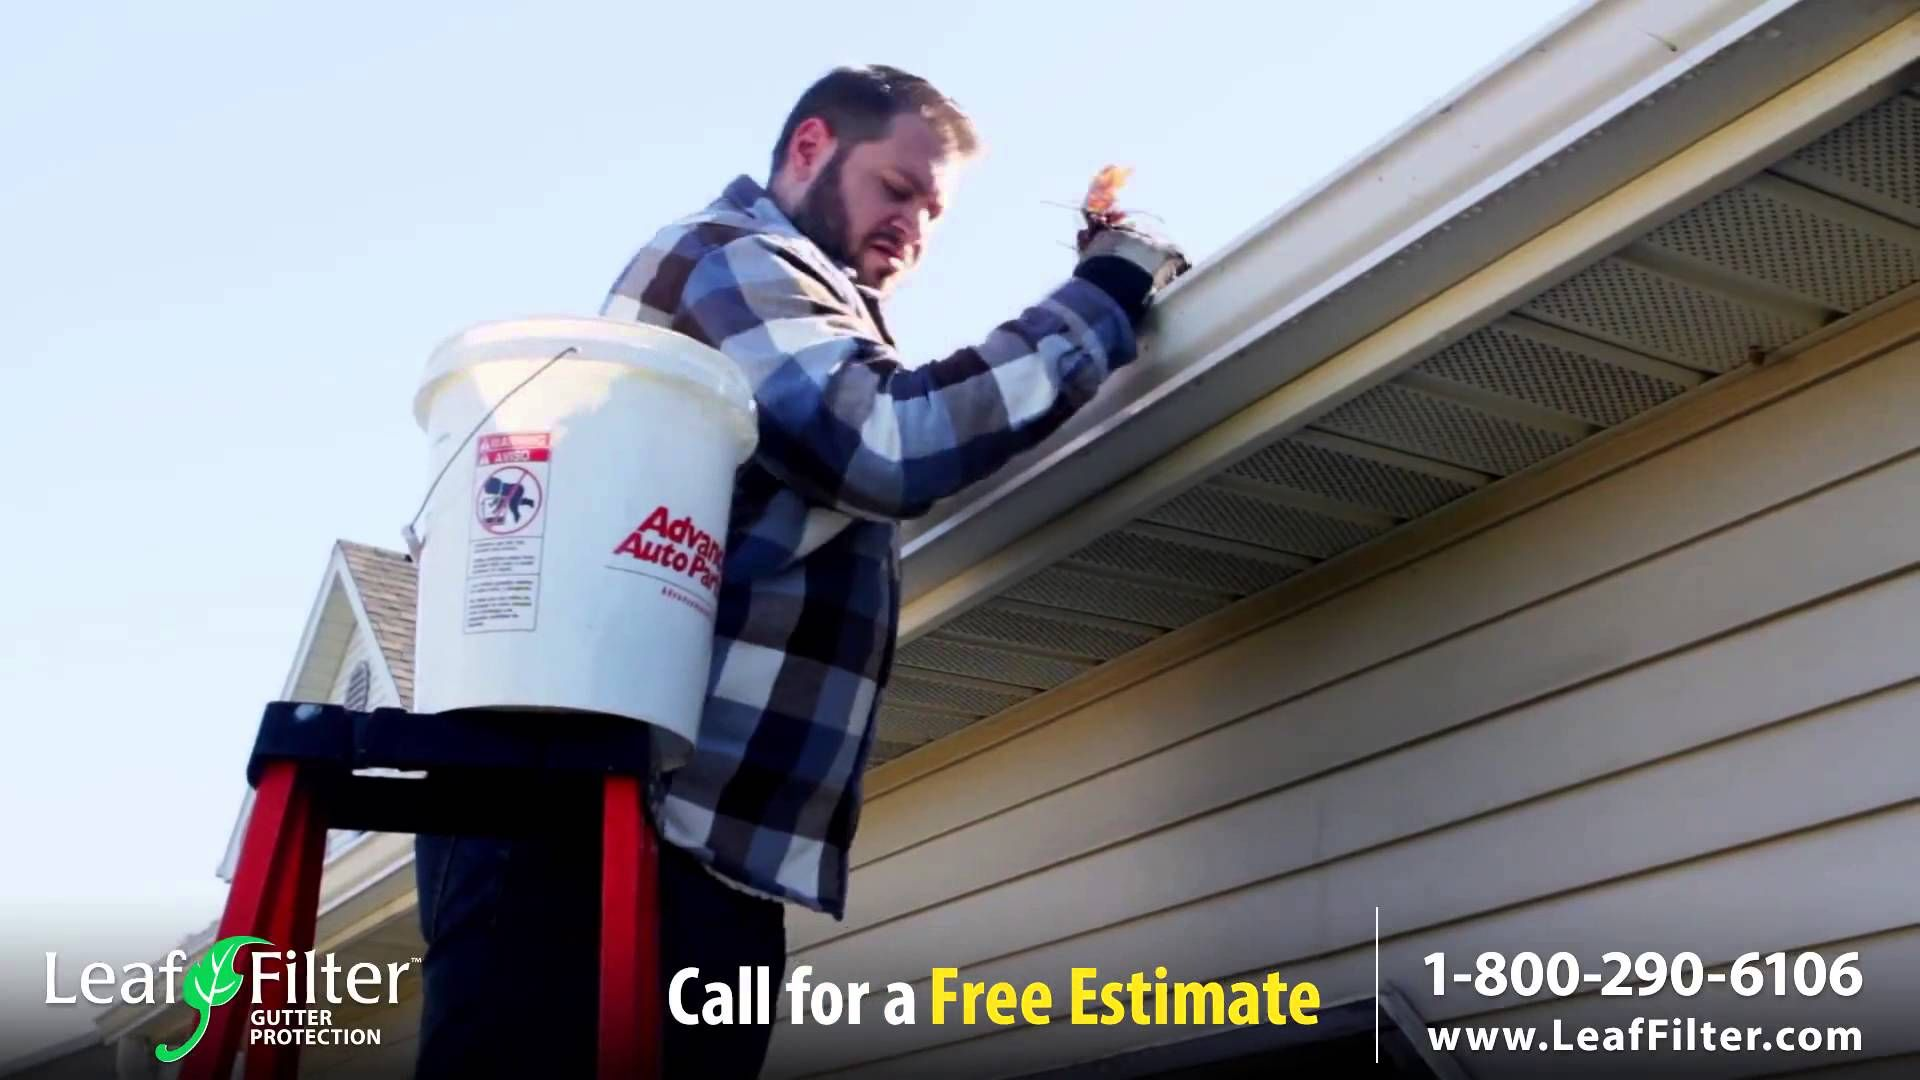 Eliminate Clogged Gutters With Leaf Filter Gutter Protection Gutter Protection Leaf Filter Filters